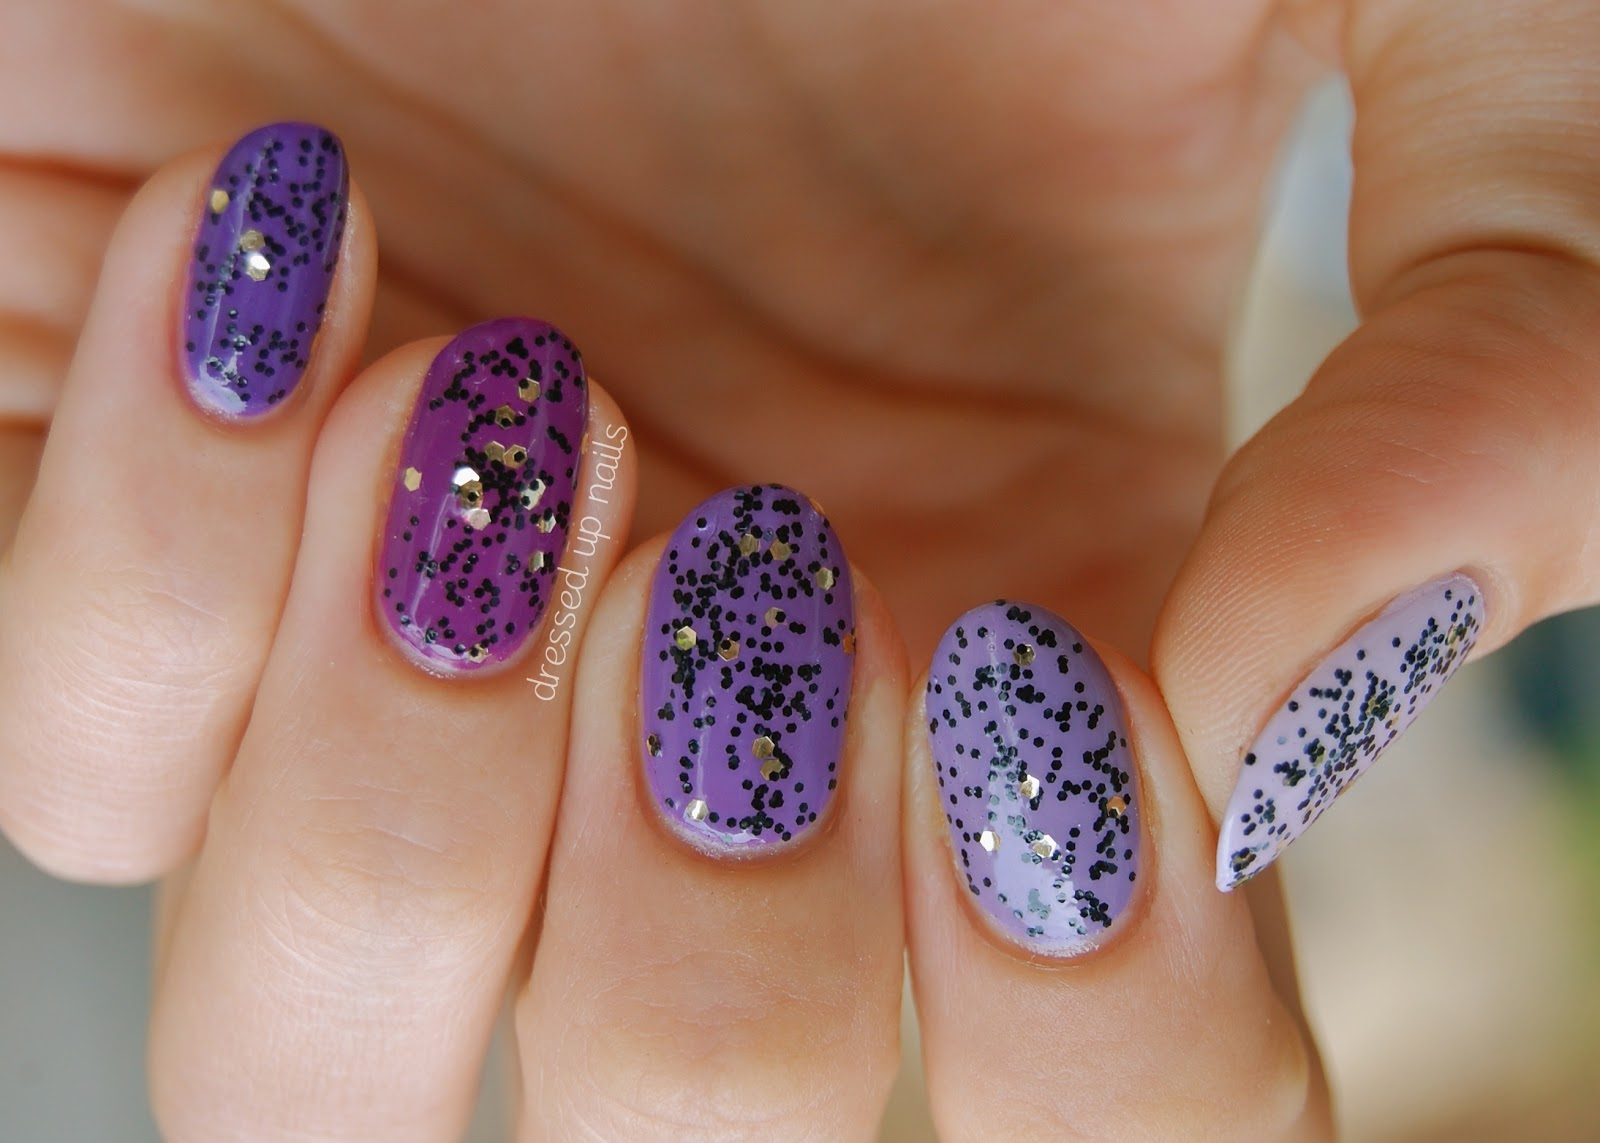 The Appealing Purple nails with glitter Photo